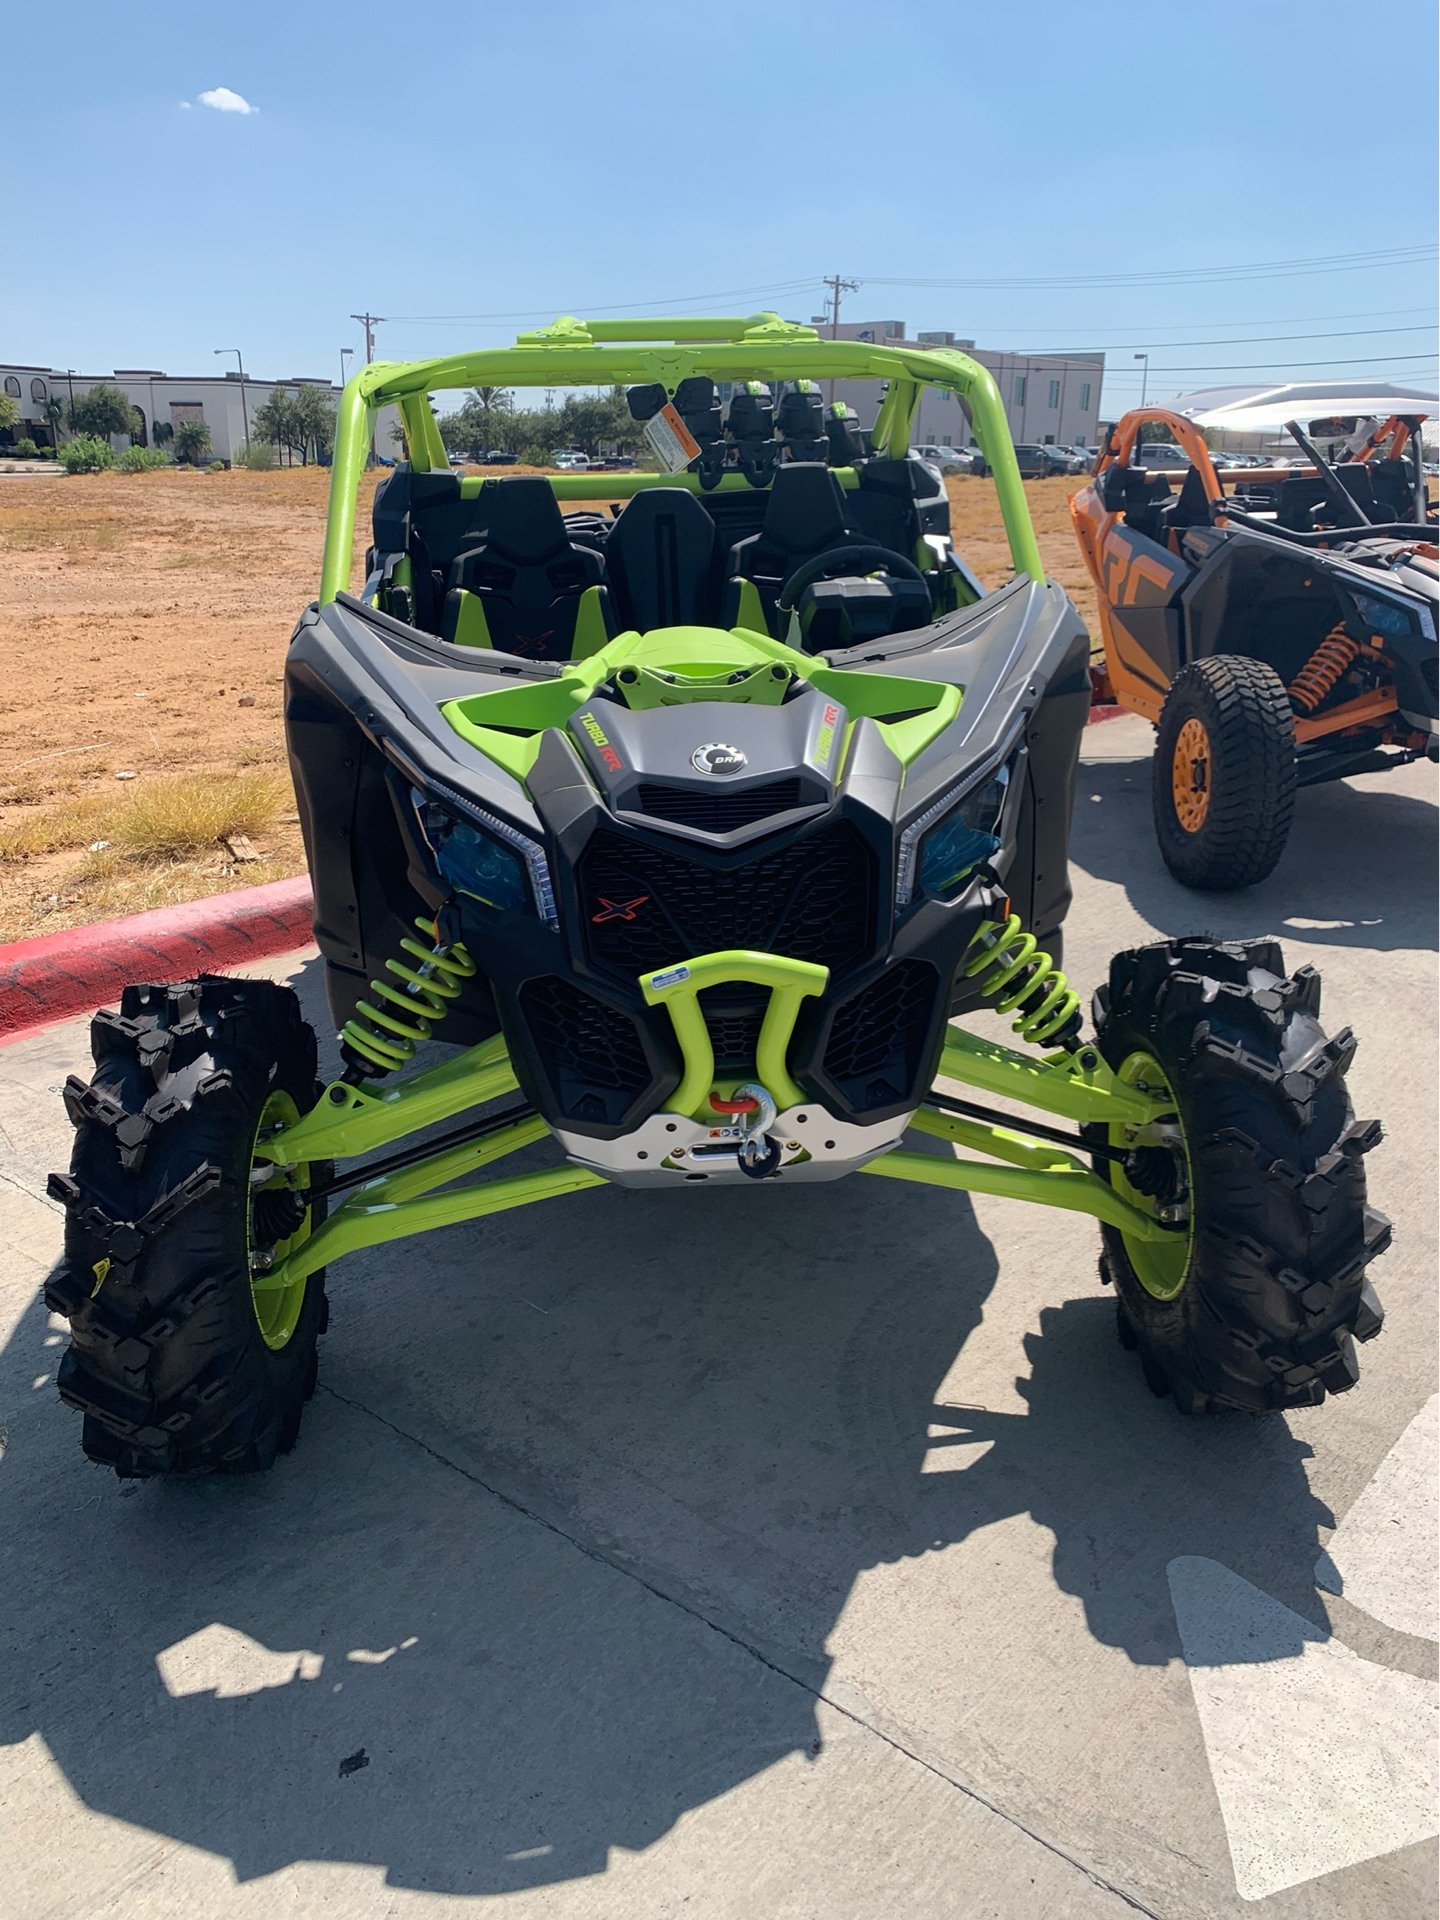 2020 Can-Am Maverick X3 X MR Turbo RR in Laredo, Texas - Photo 2